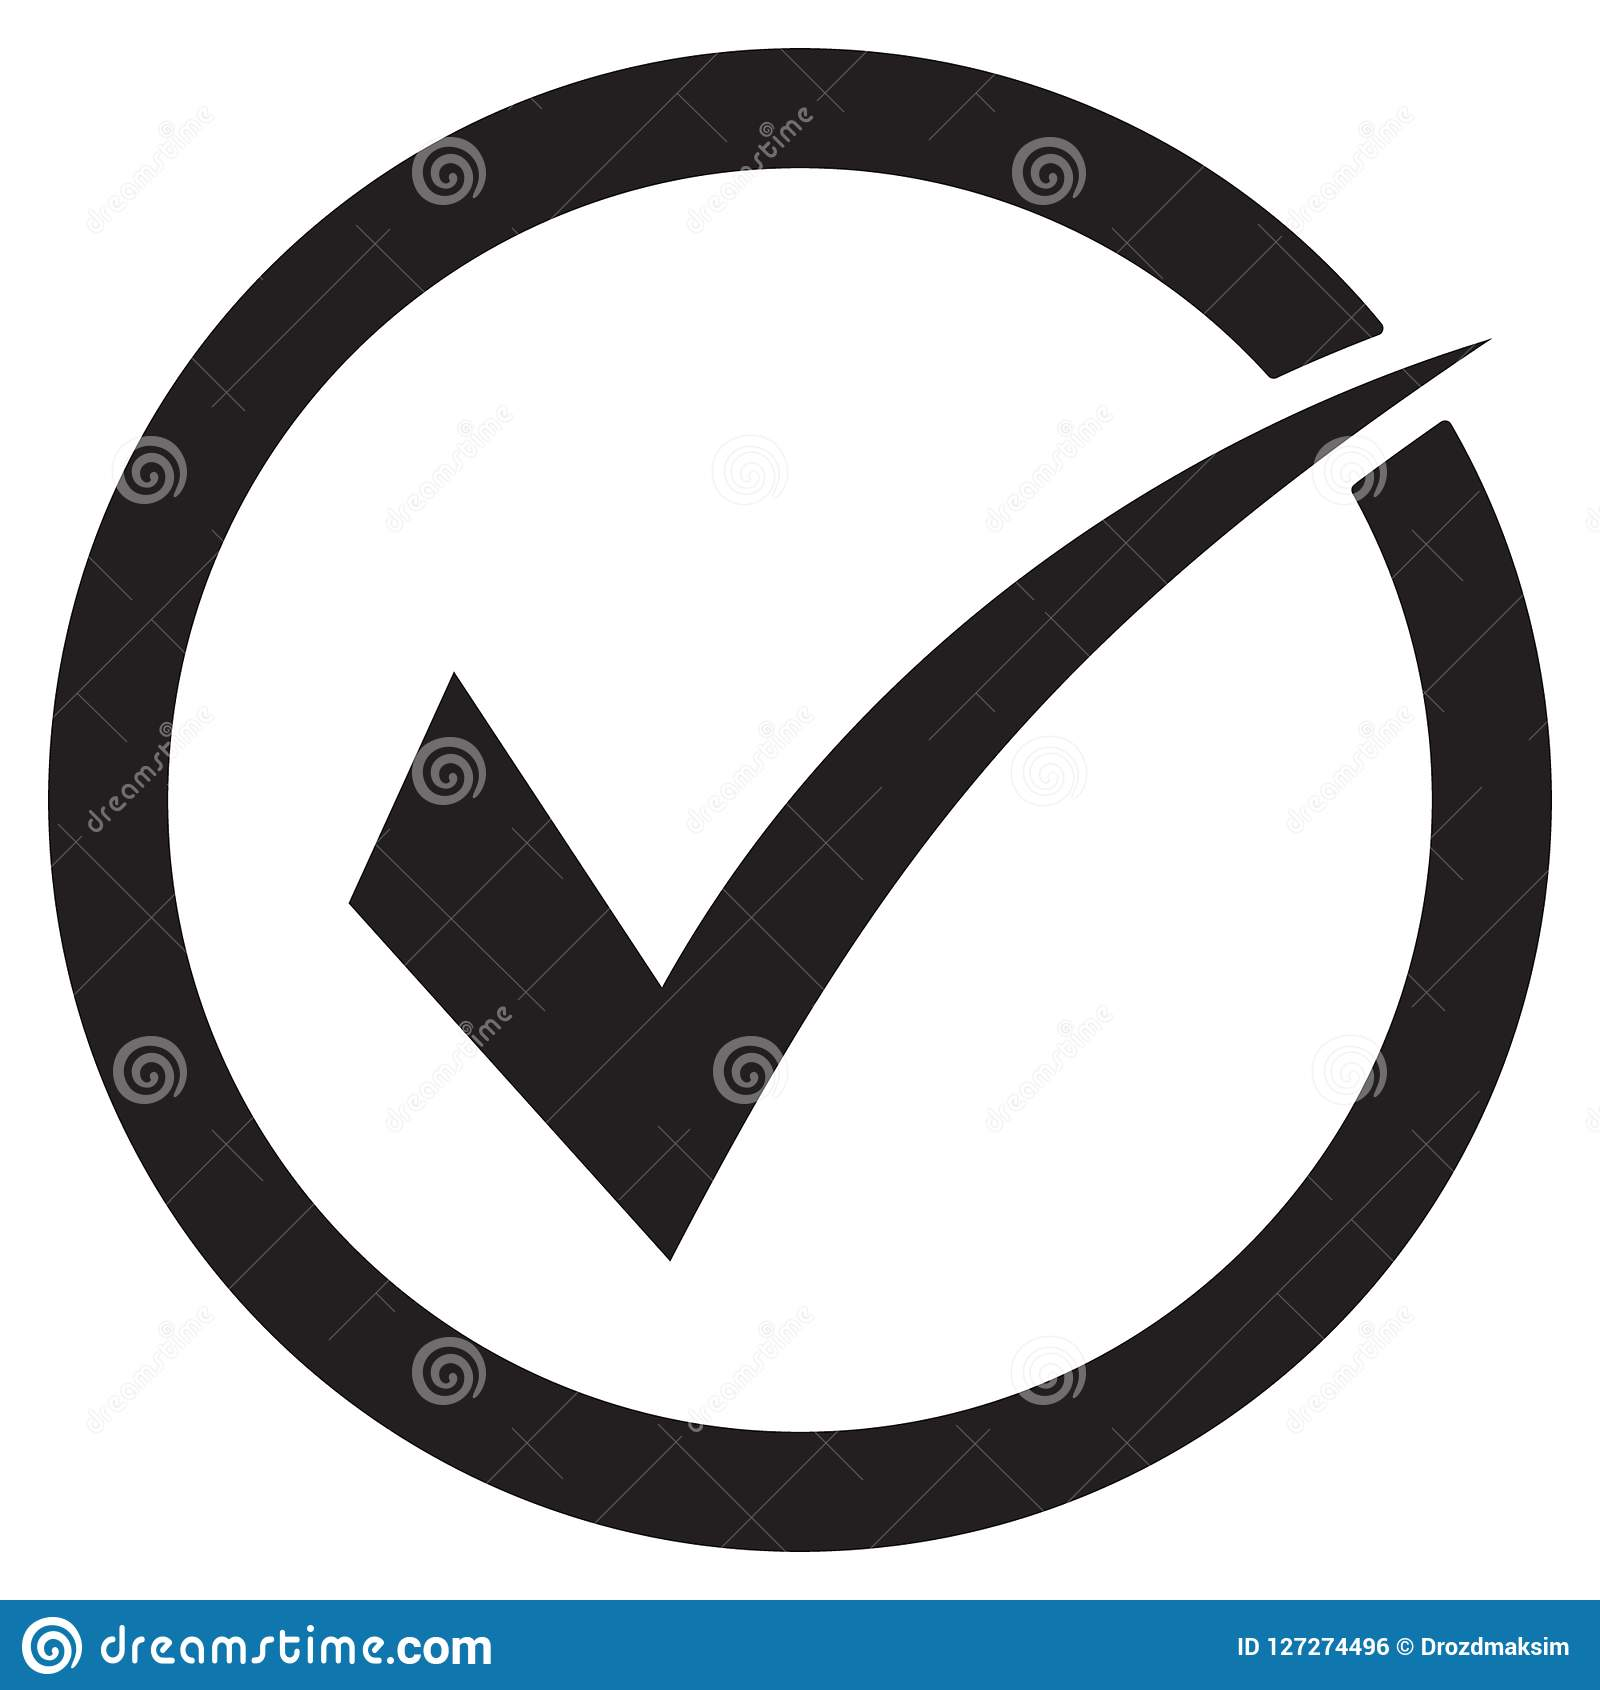 Tick icon vector symbol, checkmark isolated on white background, checked icon or correct choice sign, check mark or checkbox picto